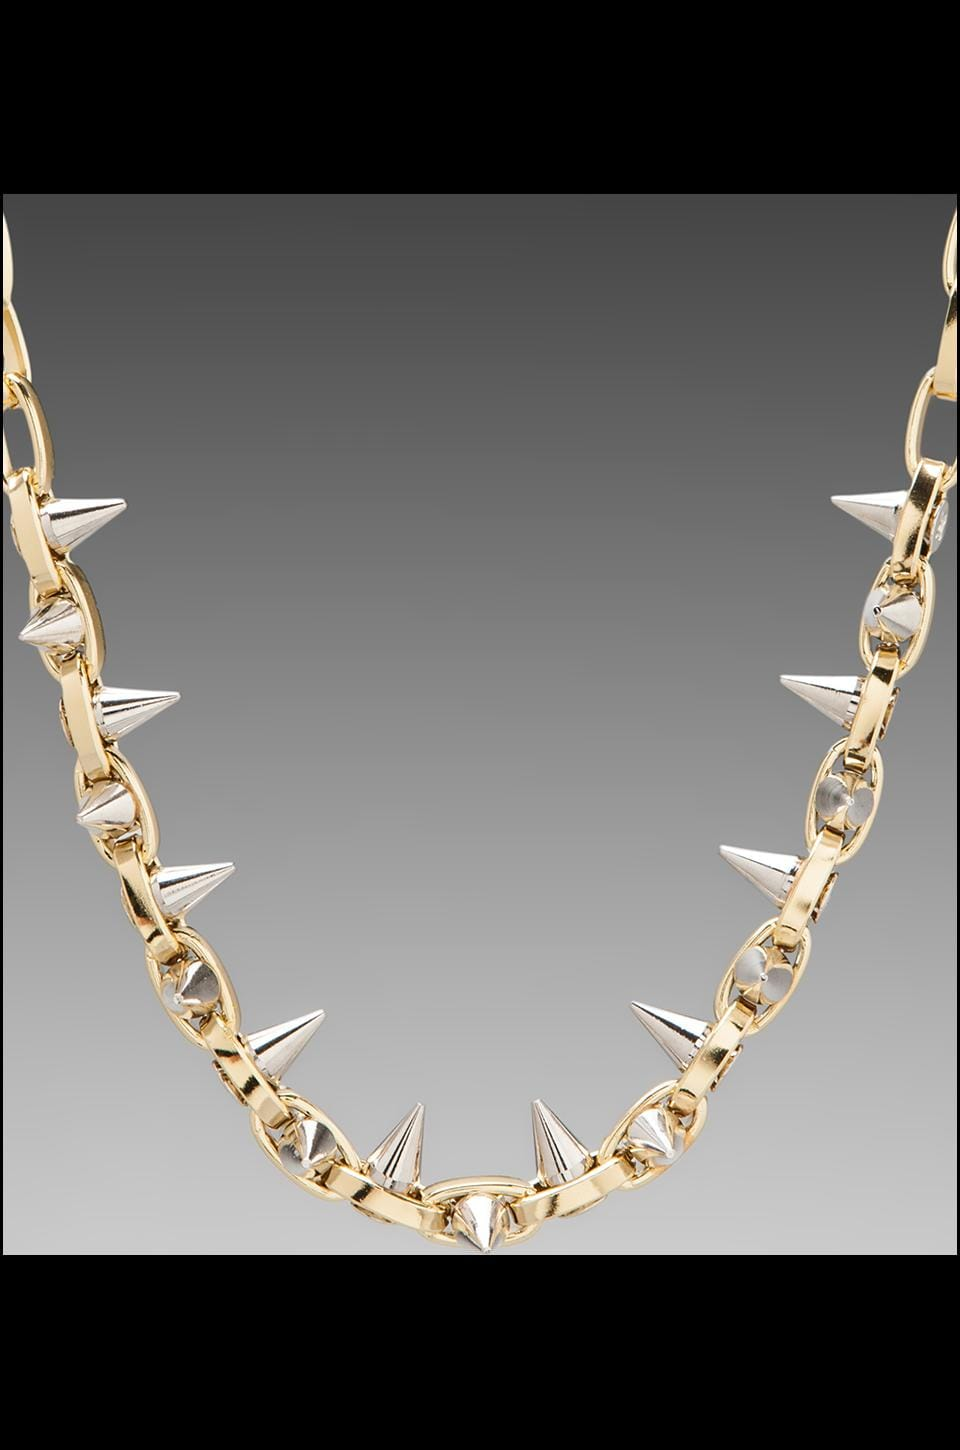 JOOMI LIM Double Row Spike Choker in Gold/Silver Spikes